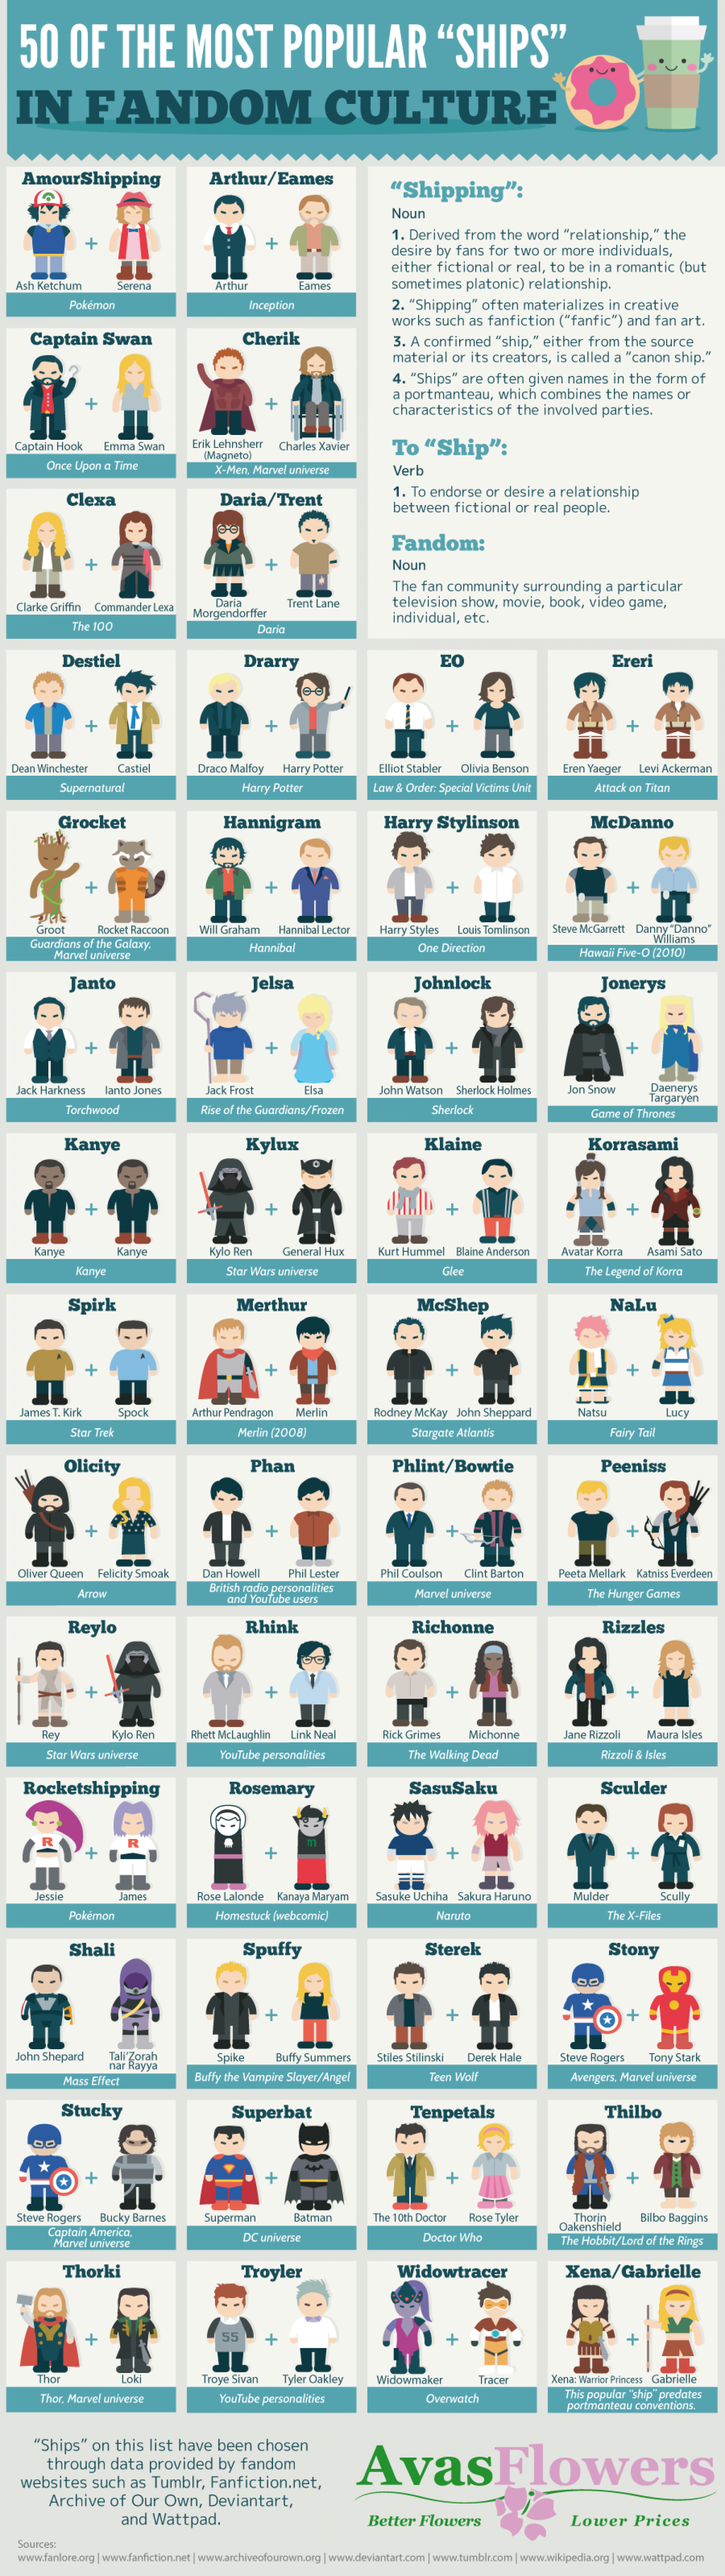 "50 of the Most Popular ""Ships"" in Fandom Culture Infographic"